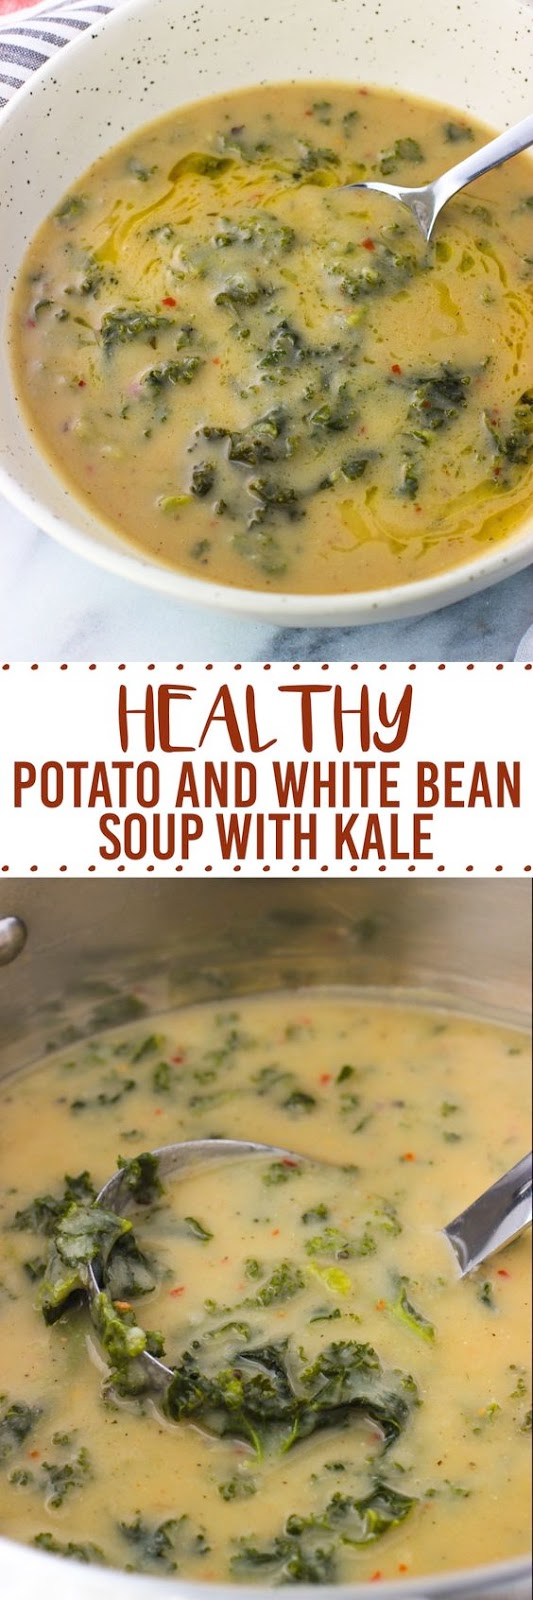 Potato and White Bean Soup with Kale(Keto-Low Carb)